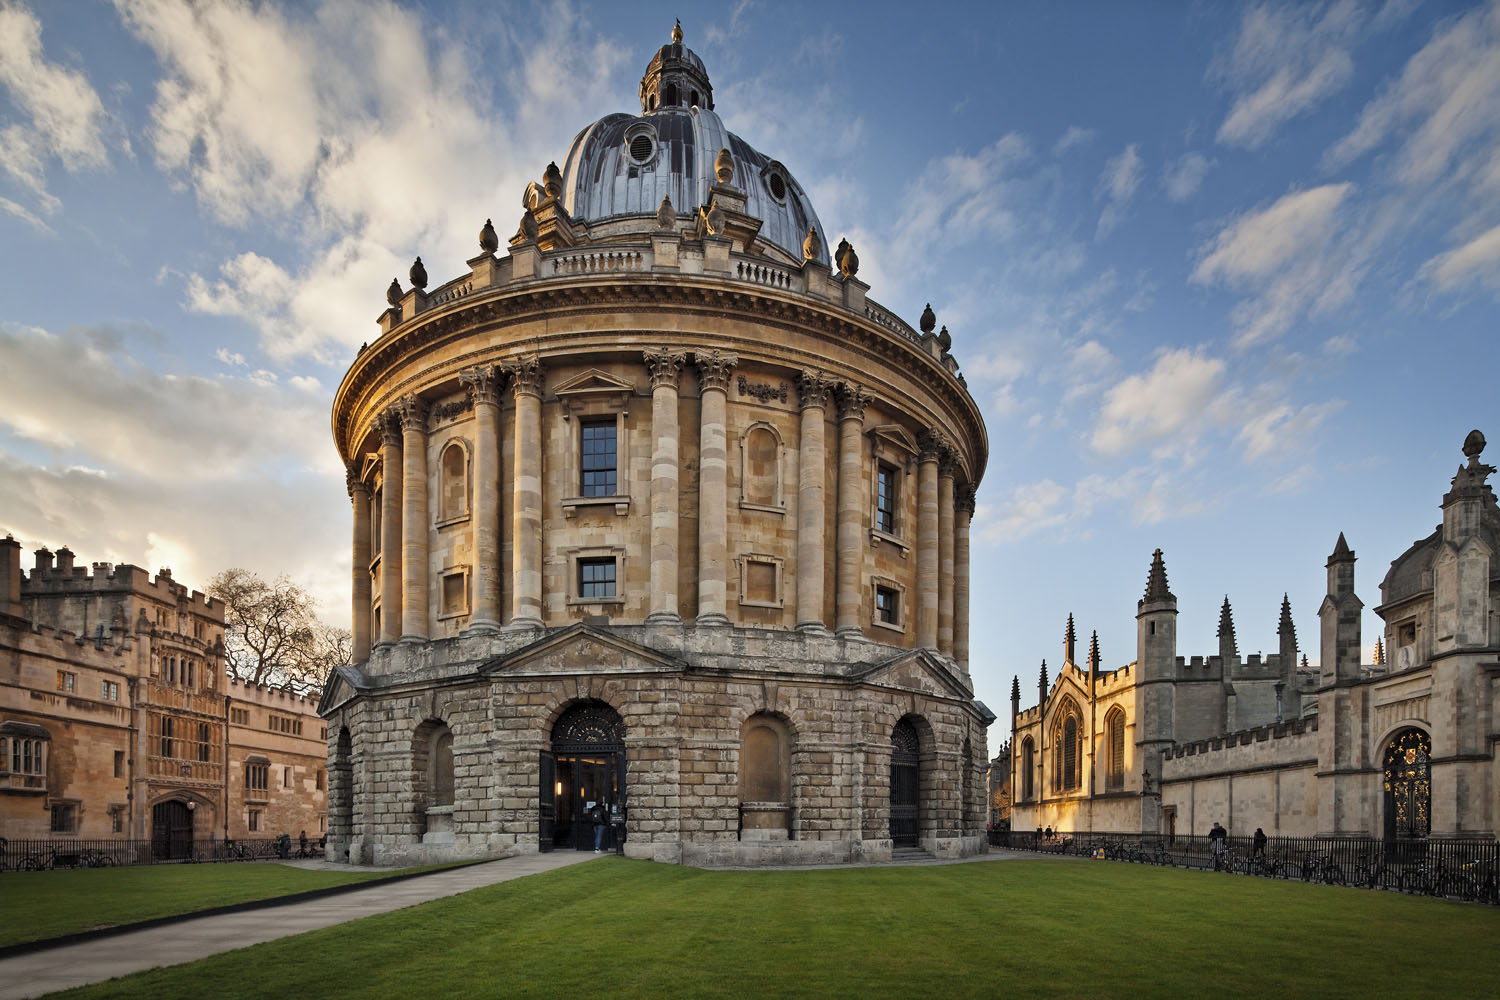 Radcliffe Camera, Bodleian Libraries, University of Oxford, UK